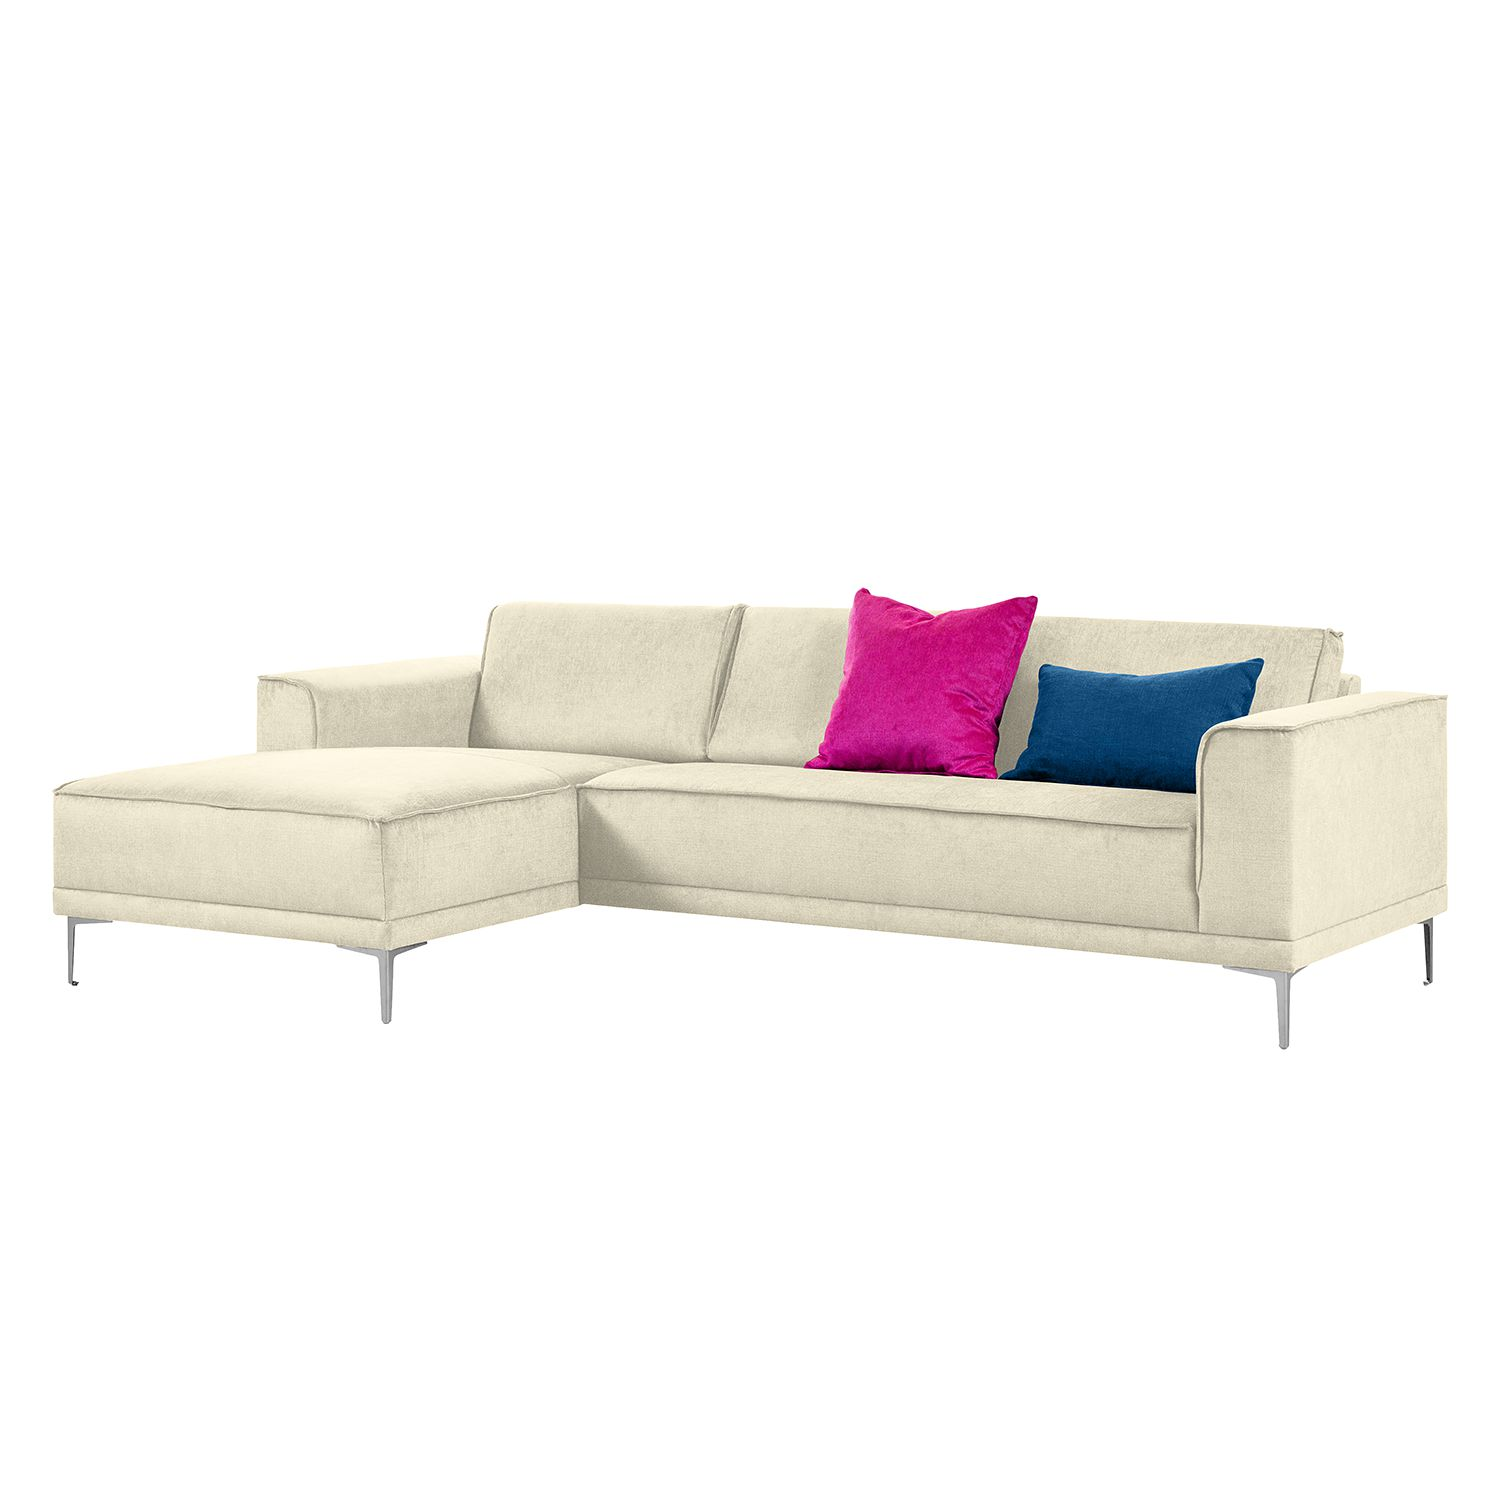 Ecksofa Grapefield - Webstoff - Longchair/Ottomane davorstehend links - Beige, Says Who image 1